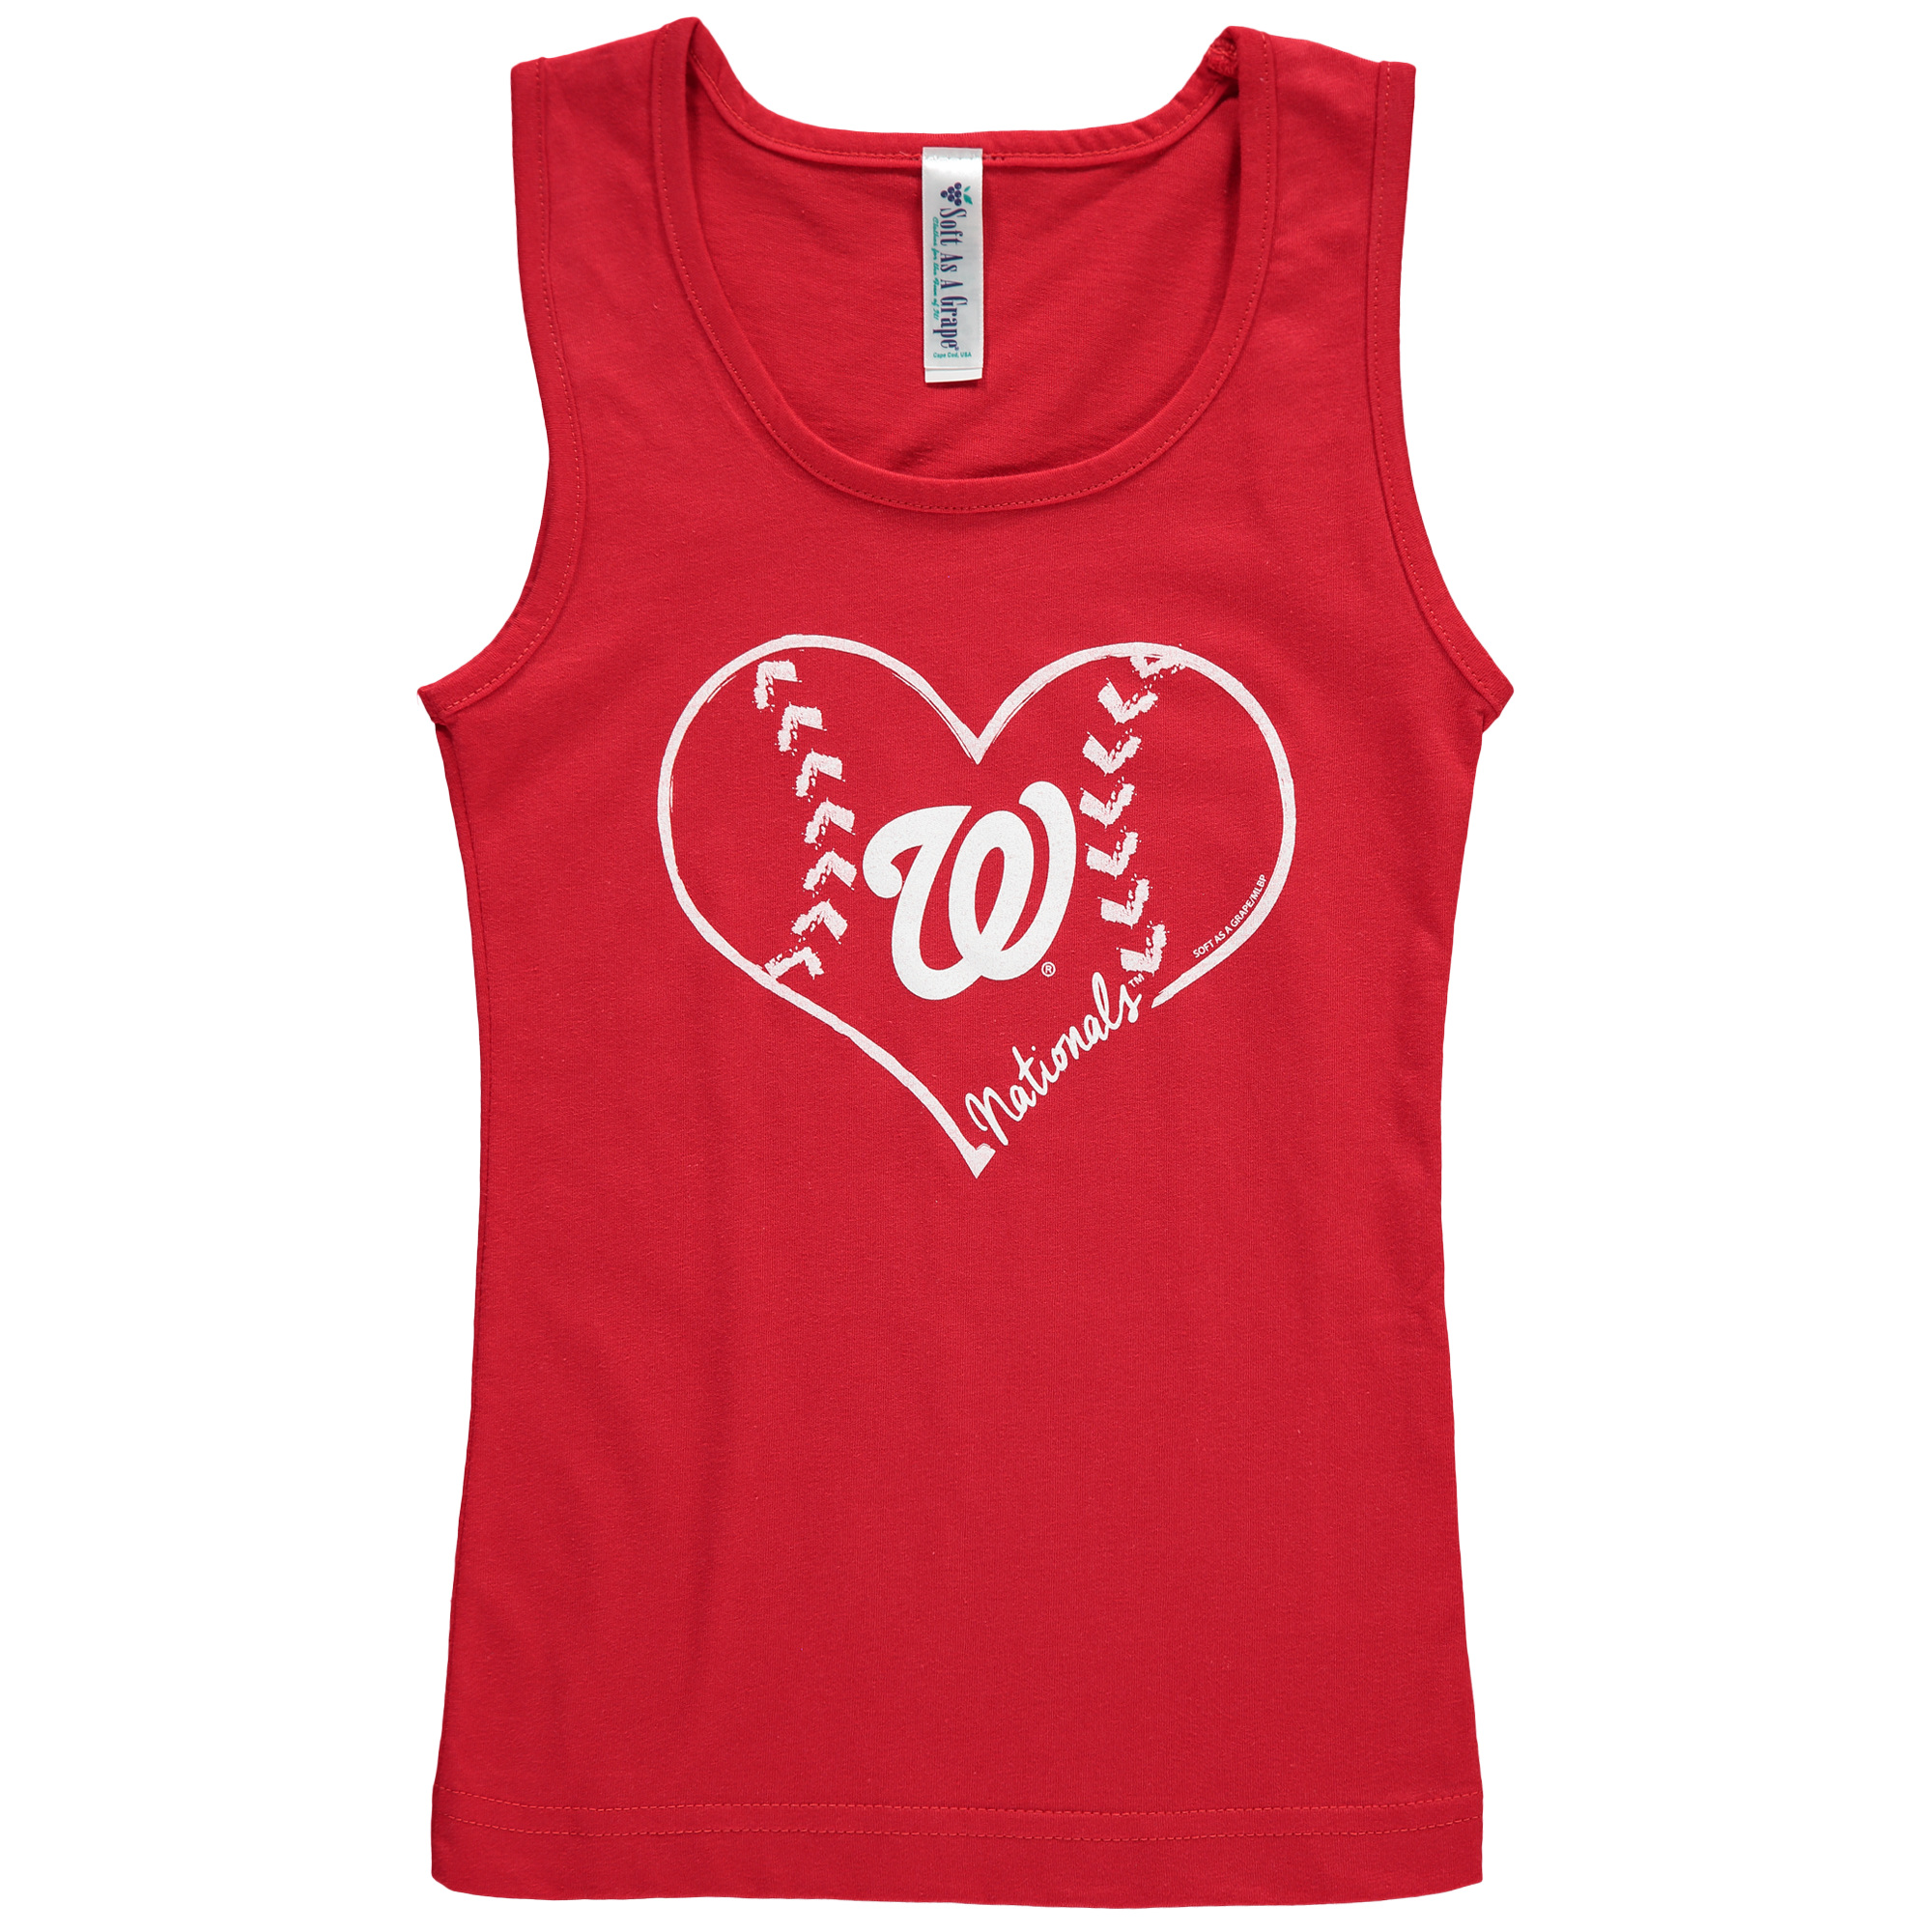 Washington Nationals Soft as a Grape Girls Youth Cotton Tank Top - Red